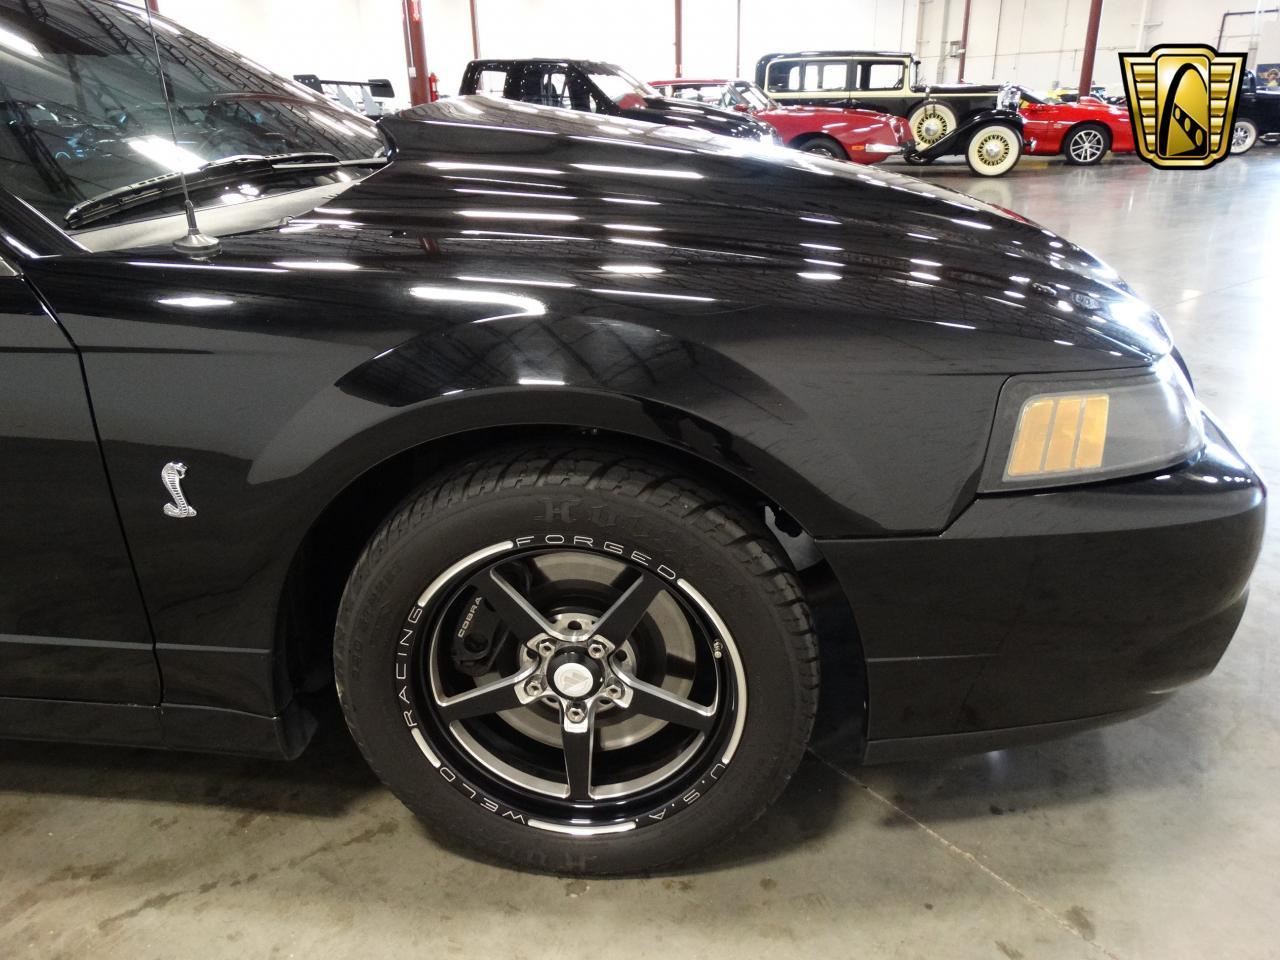 Large Picture of '02 Ford Mustang located in Tennessee Offered by Gateway Classic Cars - Nashville - L6A2